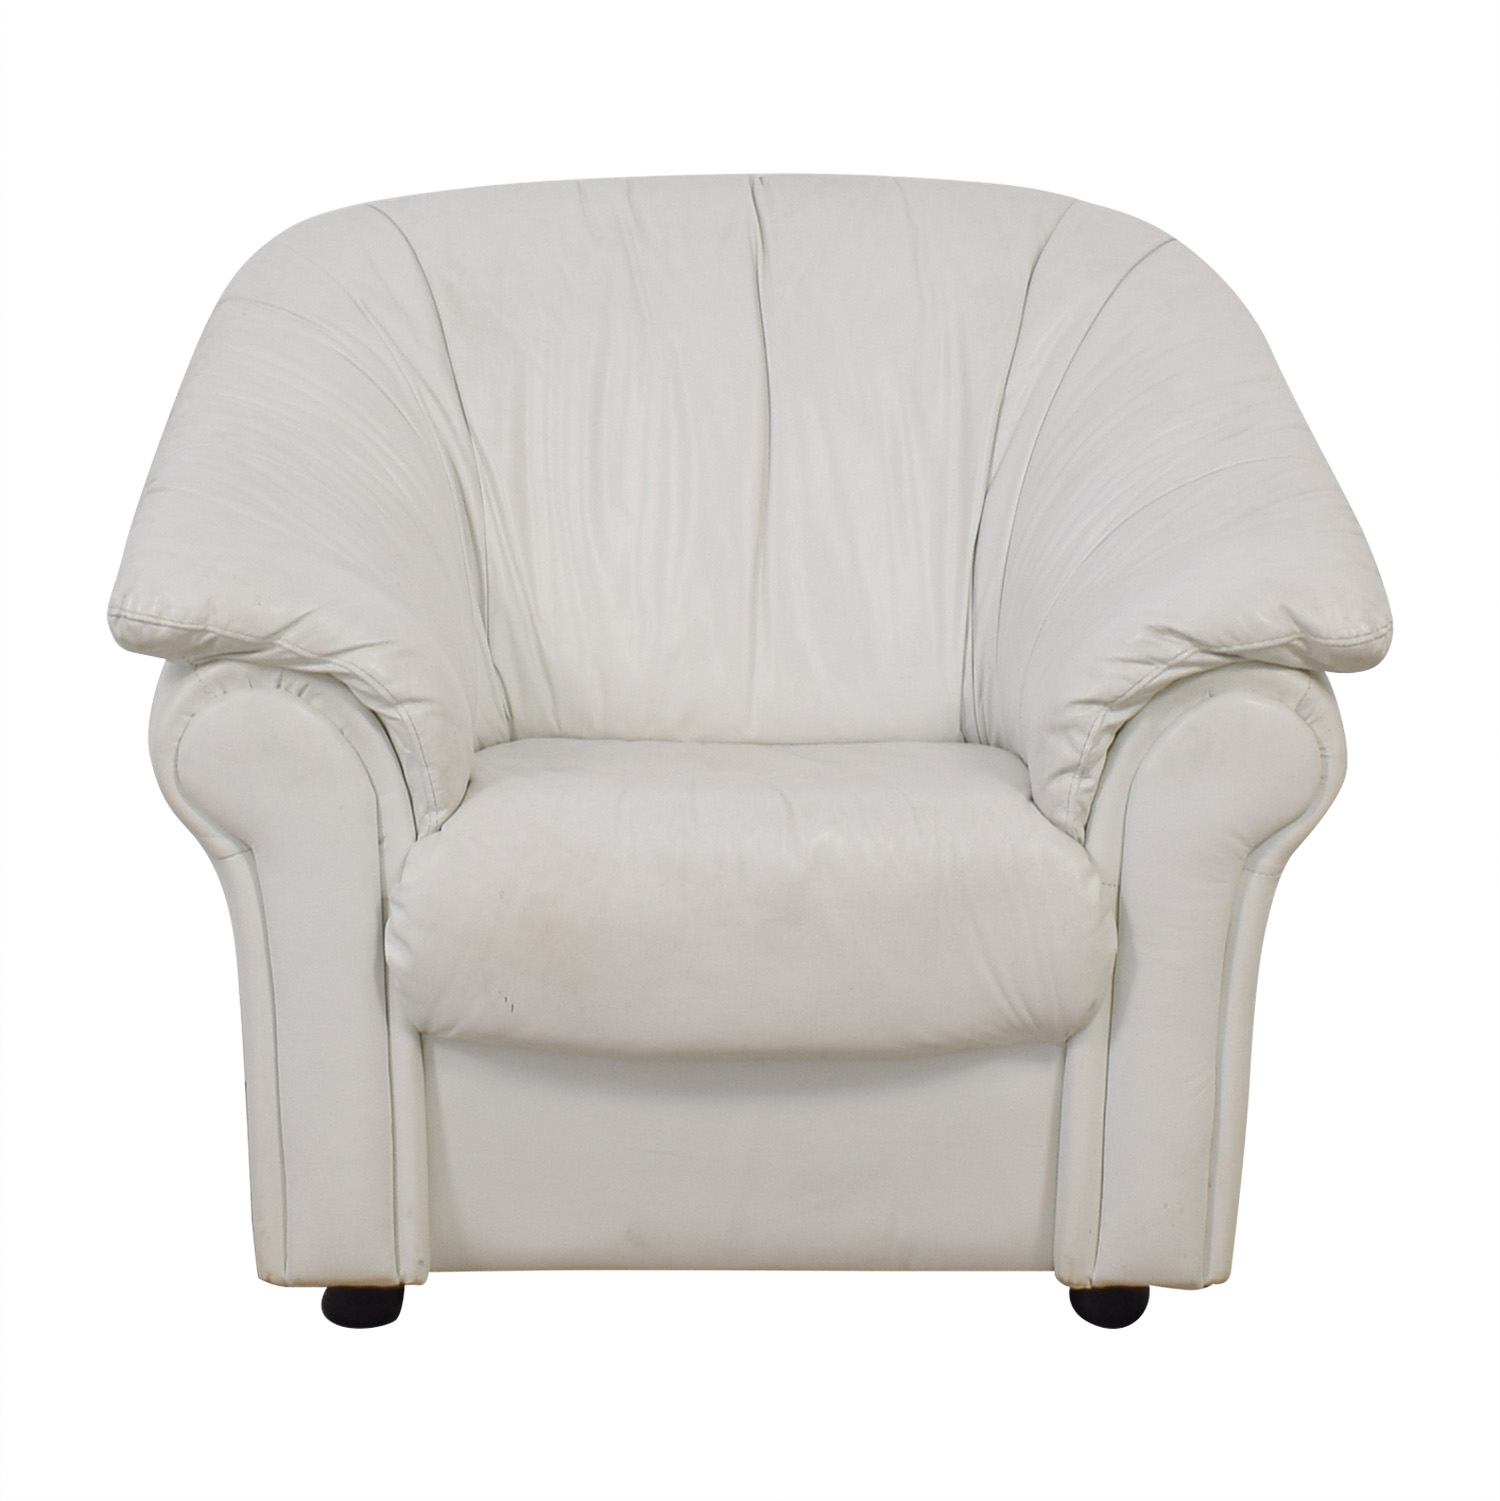 West Elm White Leather Armchair / Sofas